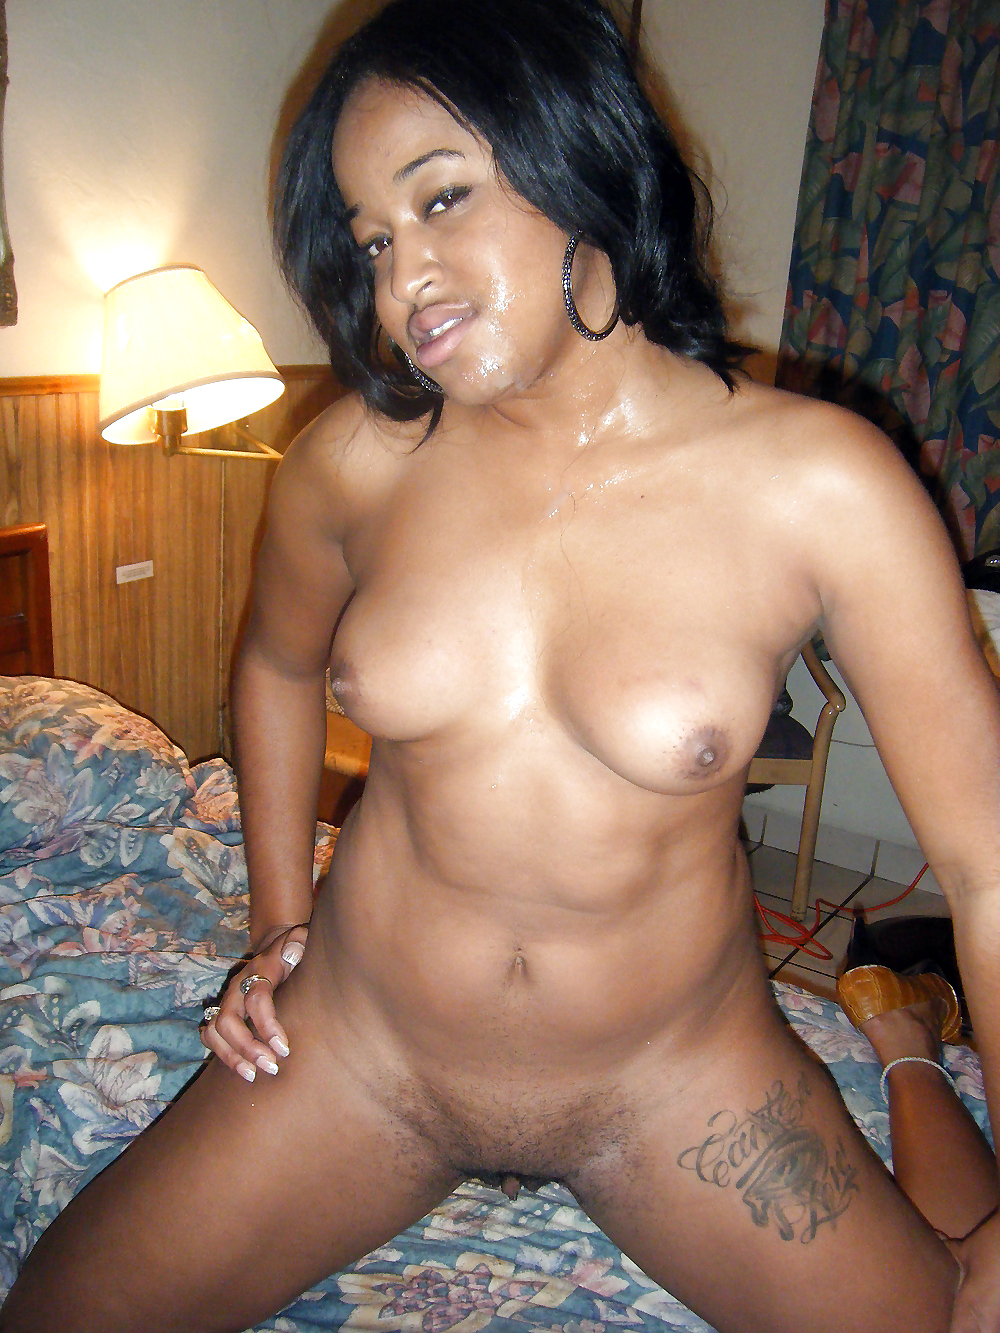 Pity, hot naked black women nude for that